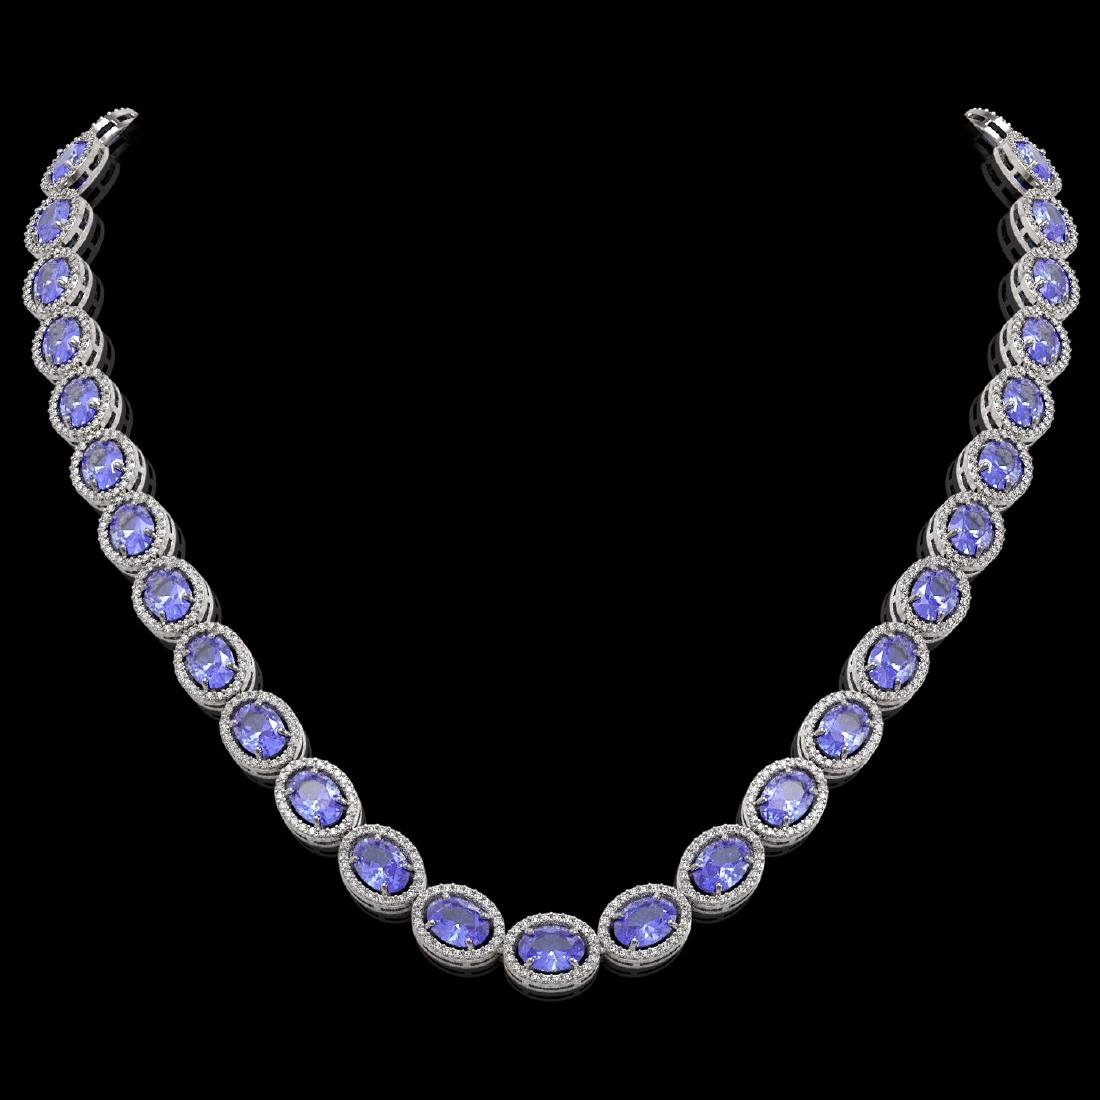 48.65 CTW Tanzanite & Diamond Halo Necklace 10K White